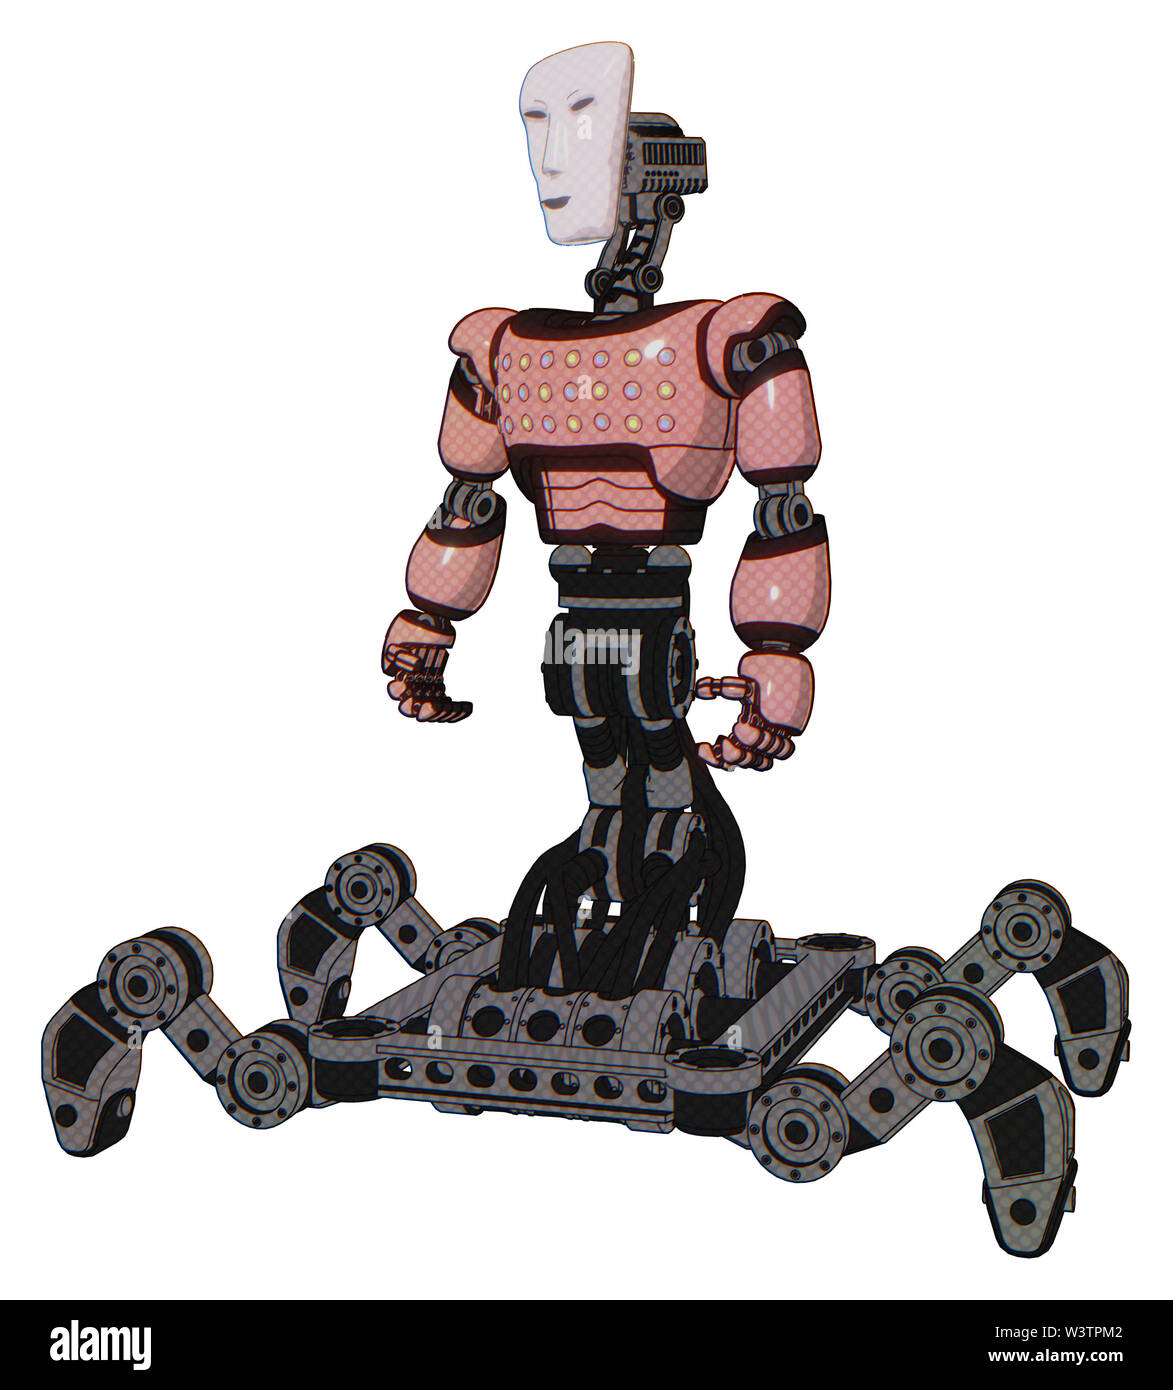 Bot containing elements: humanoid face mask, light chest exoshielding, chest green blue lights array, insect walker legs. Material: toon pink tint. Stock Photo